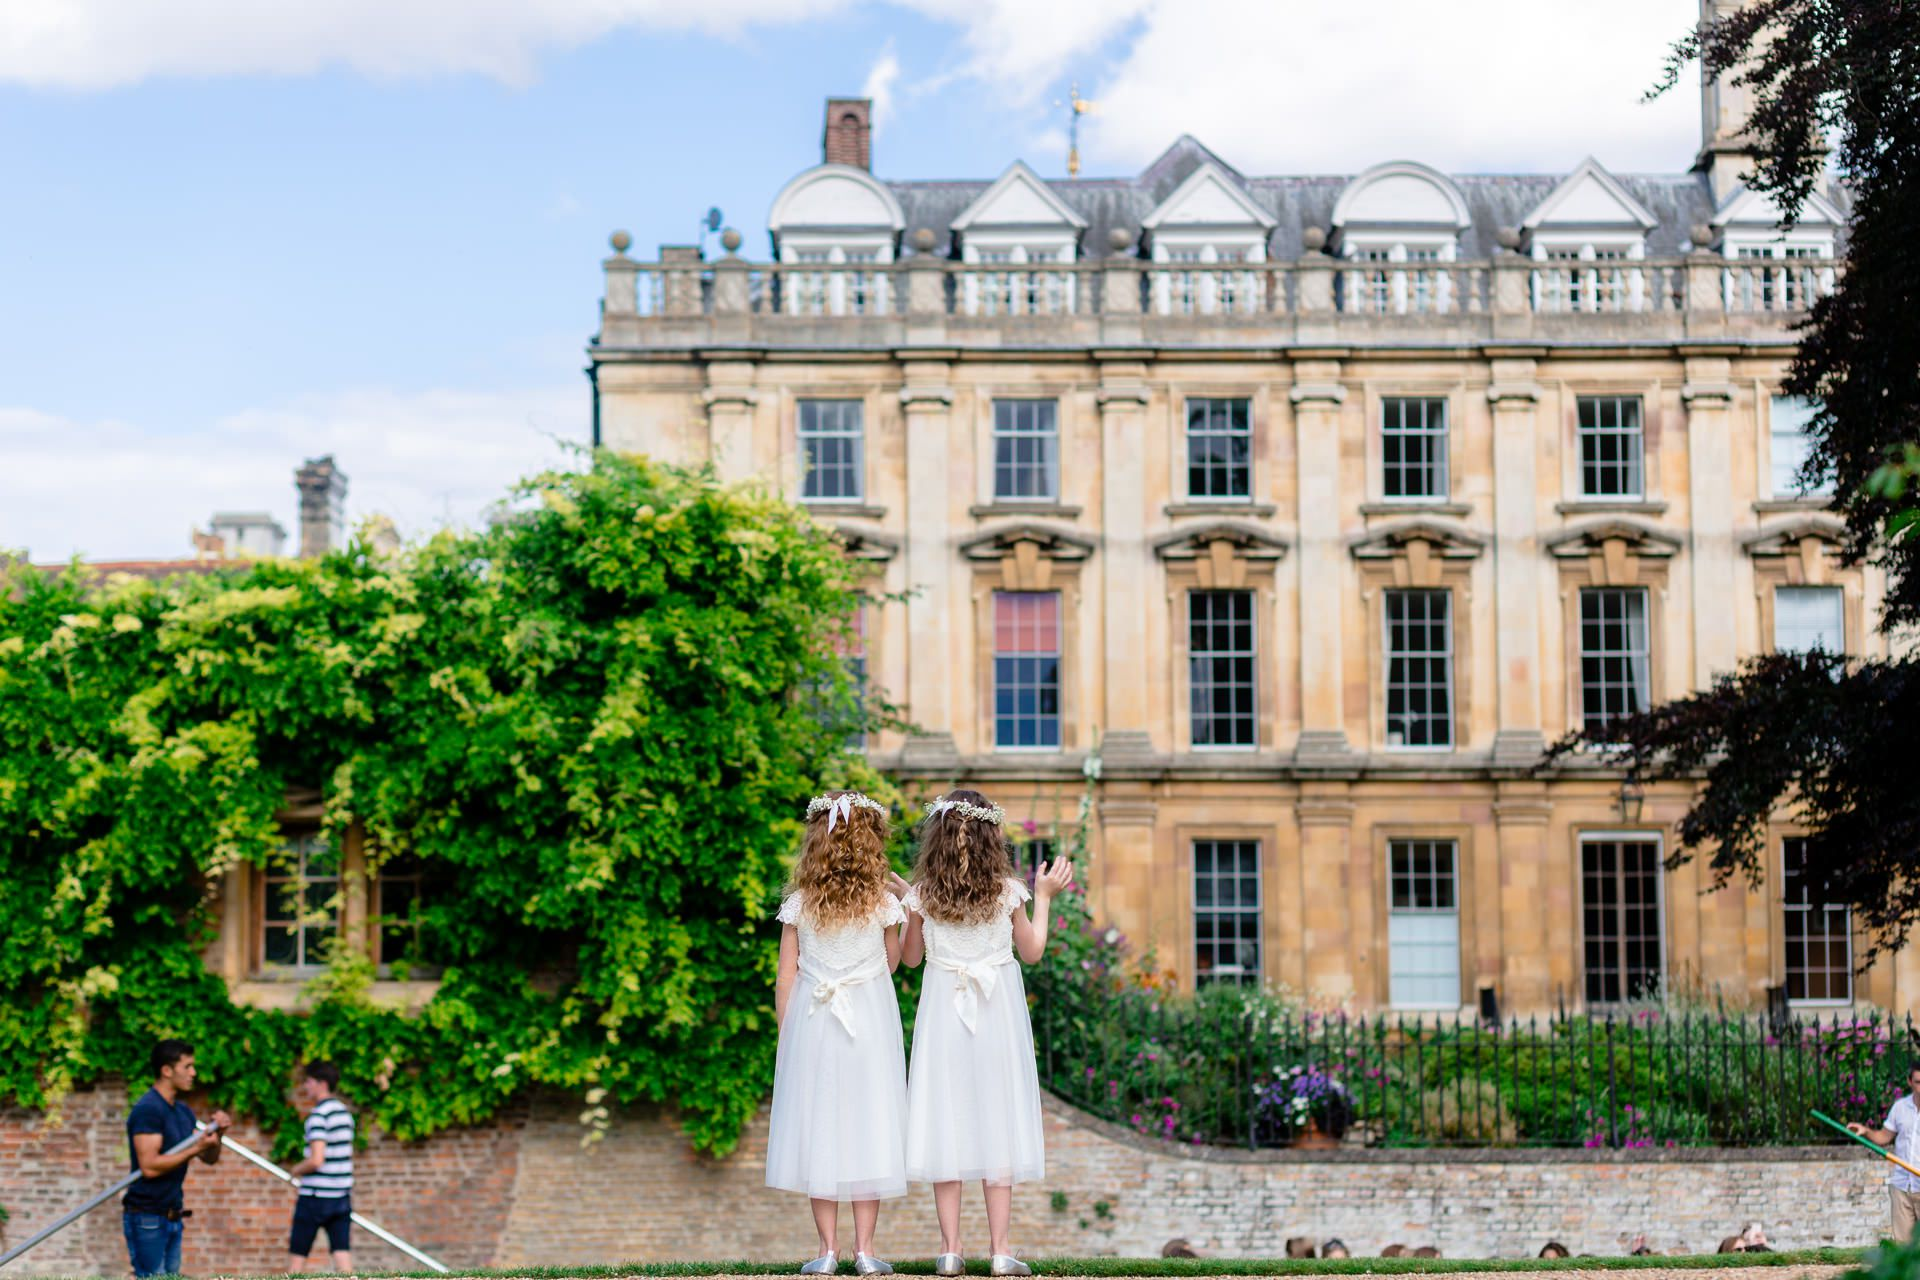 little girls and the palace